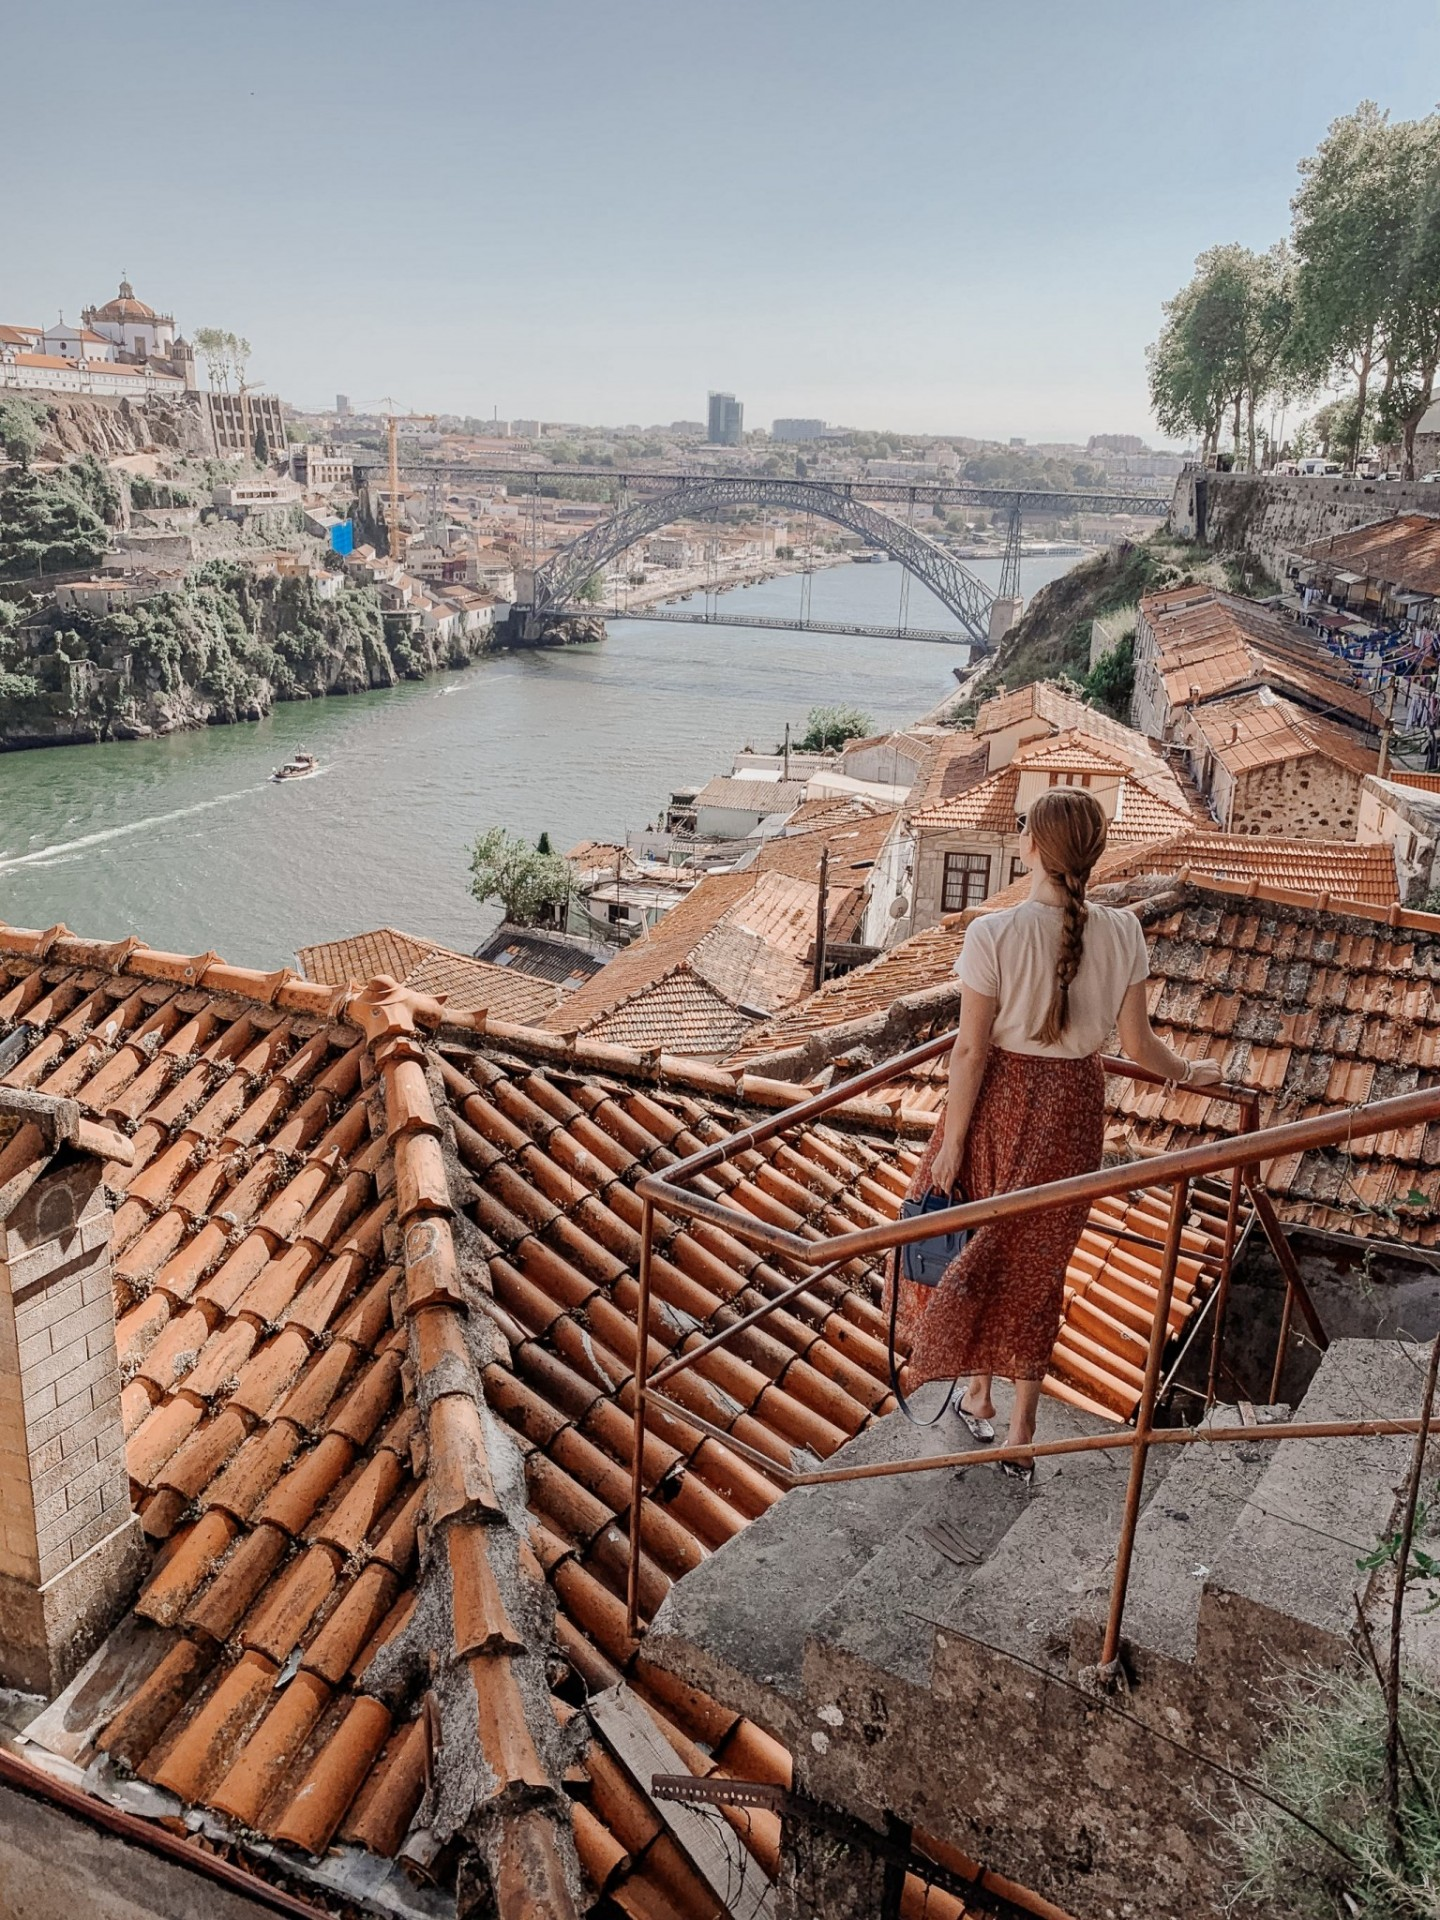 Lifestyle blogger Mollie Moore shares a Porto travel guide | A Porto Portugal Travel Guide by popular Great Britain international travel blogger, Mollie Moore: image of a woman standing on a stair case outside surrounded by red tile roof buildings and overlooking a river and the city of Porto Portugal.